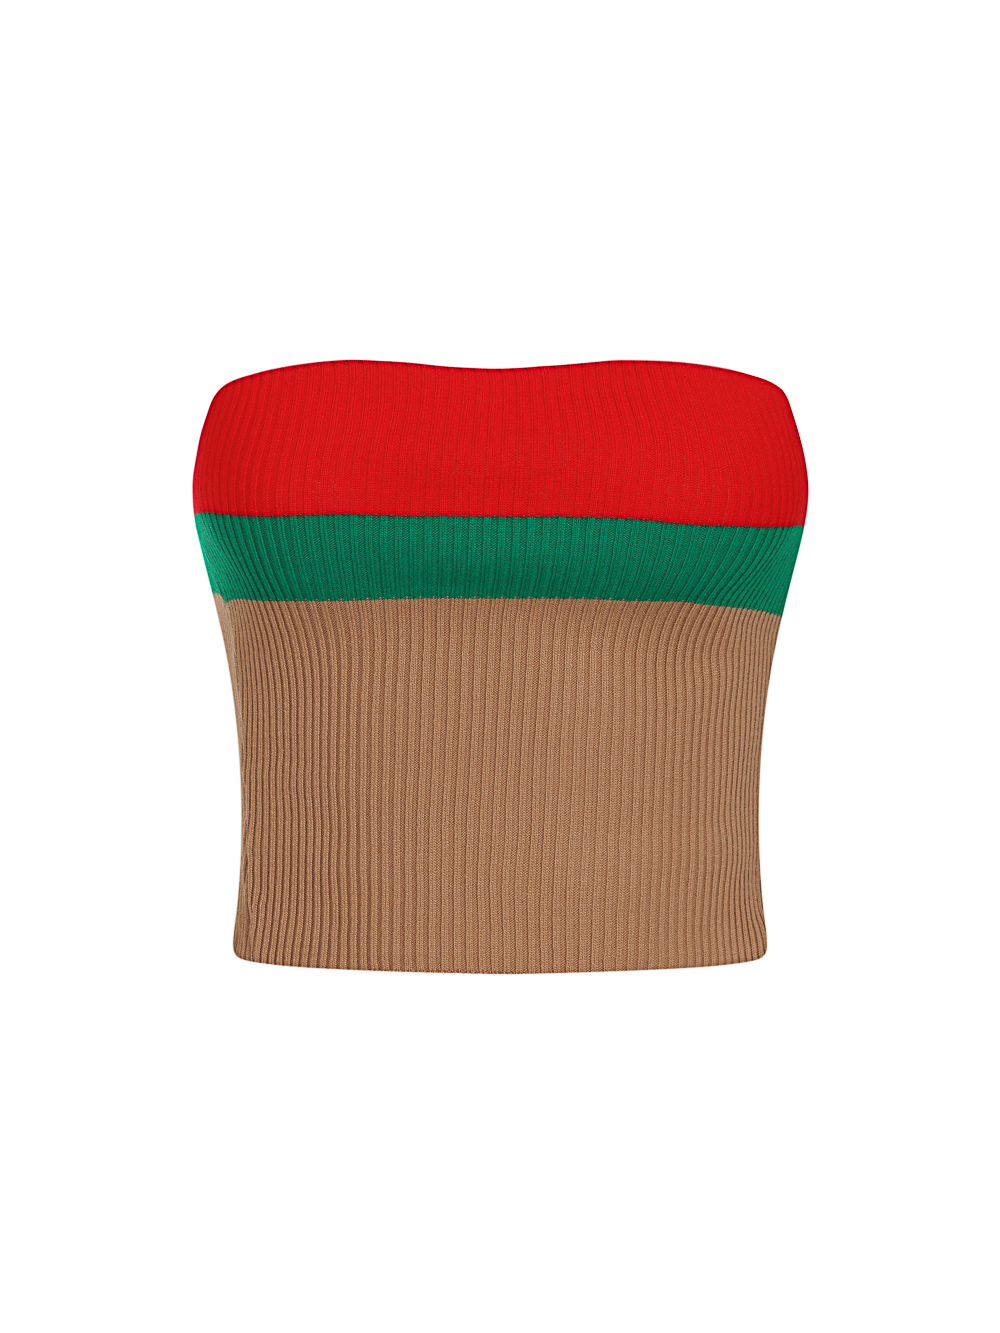 Zara Camel Tan Red and Green Striped Fine Knit 3 Piece Lounge Co-ord Set Nazz Collection